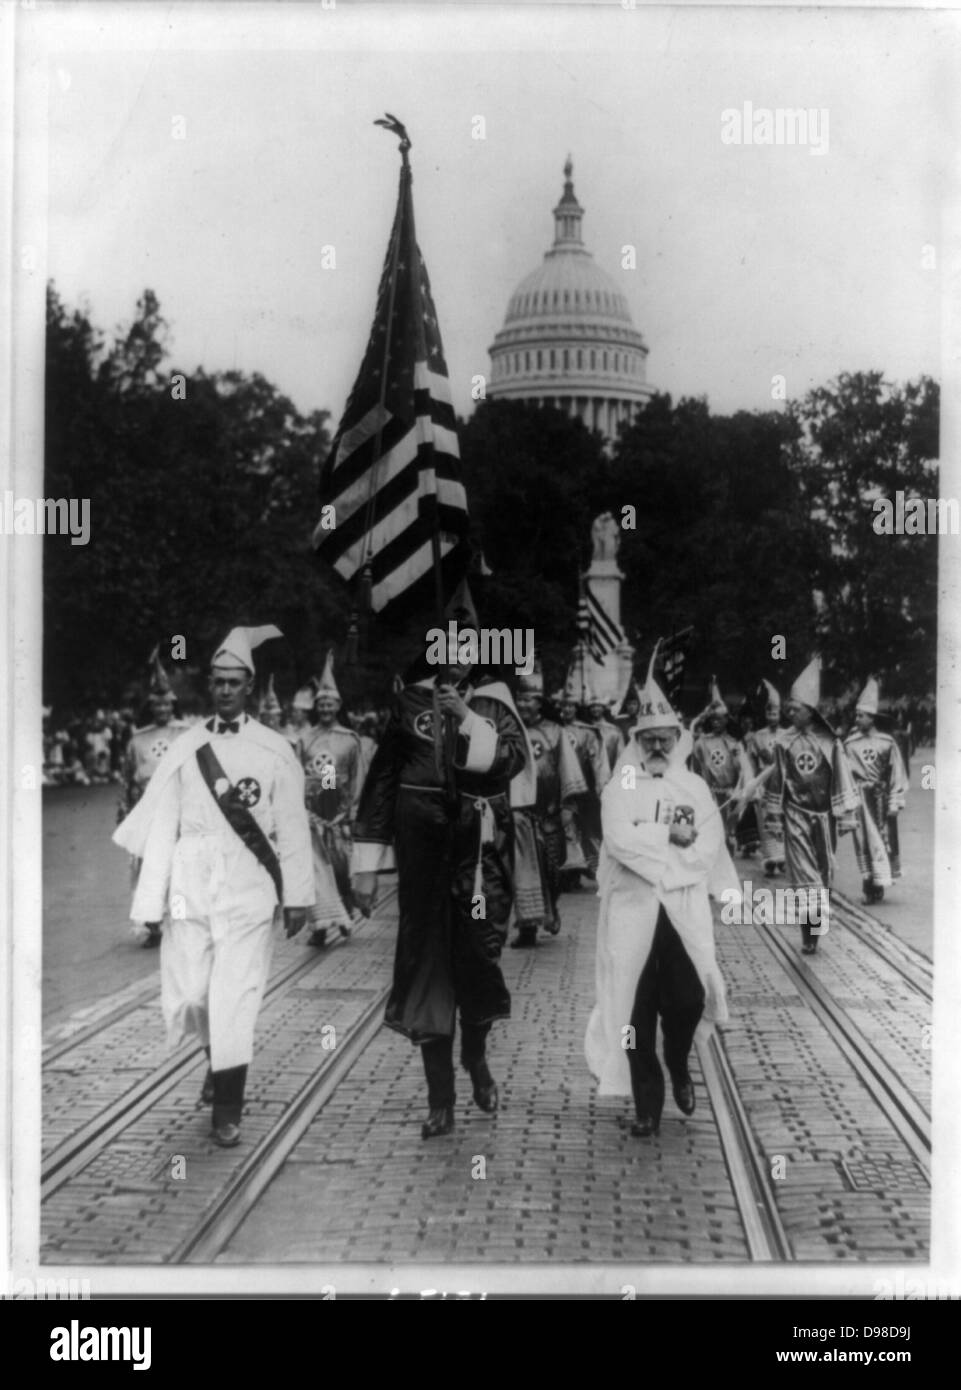 Parade of the Ku Klux Klan, in regalia and carrying the stars and stripes, through counties of Virginia bordering - Stock Image